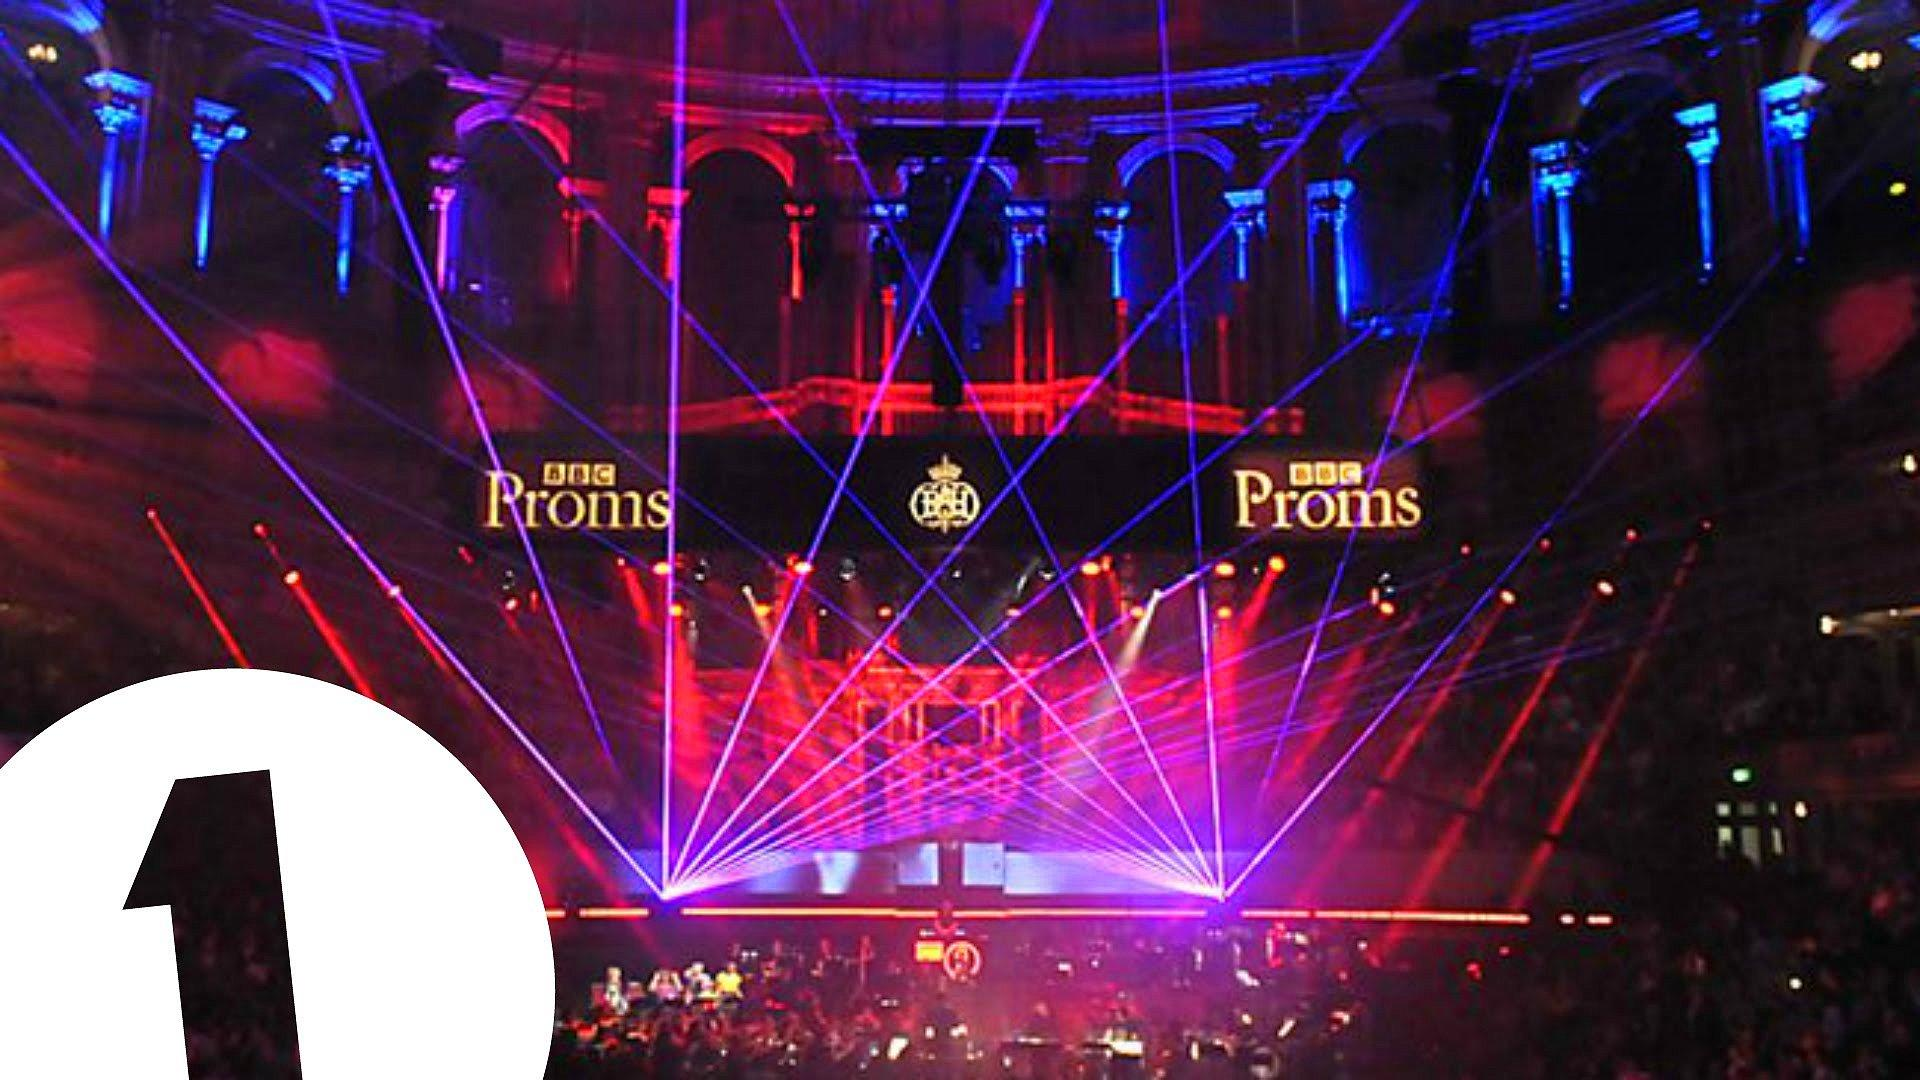 Zaman makinesi olsa an nda orada olmak steyece iniz for Ibiza proms cd